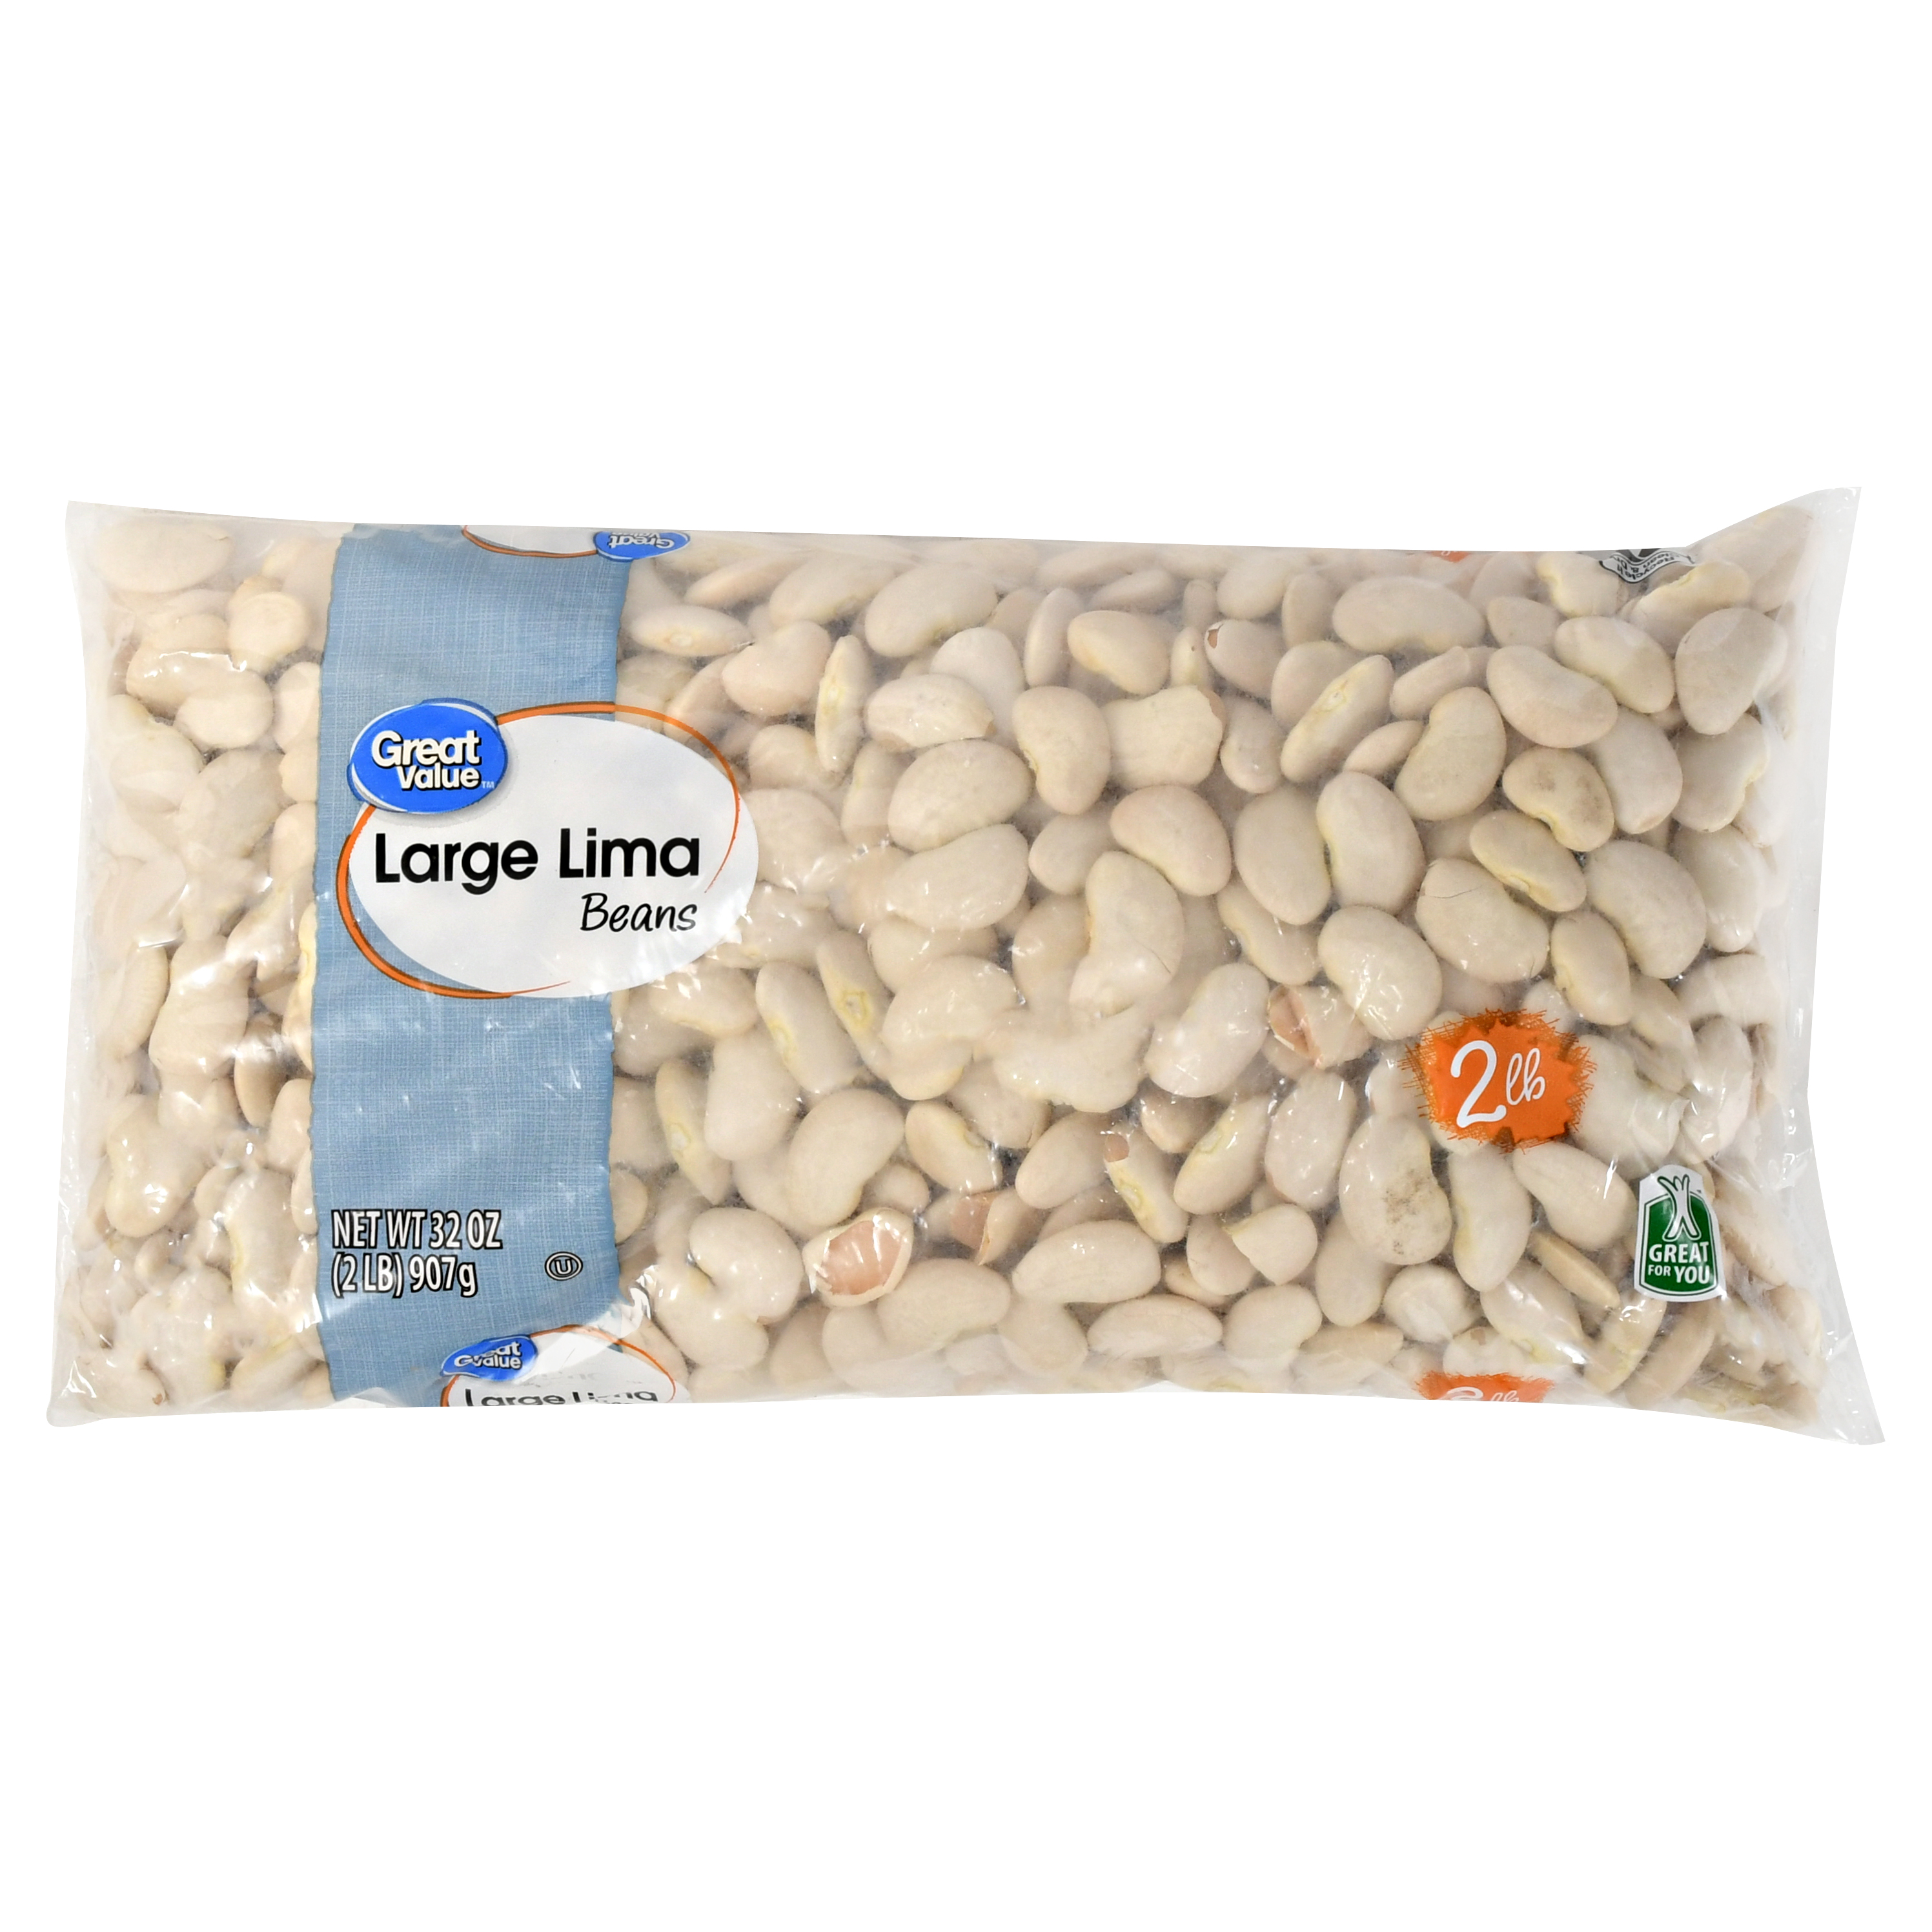 Great Value Large Lima Beans, 32 oz